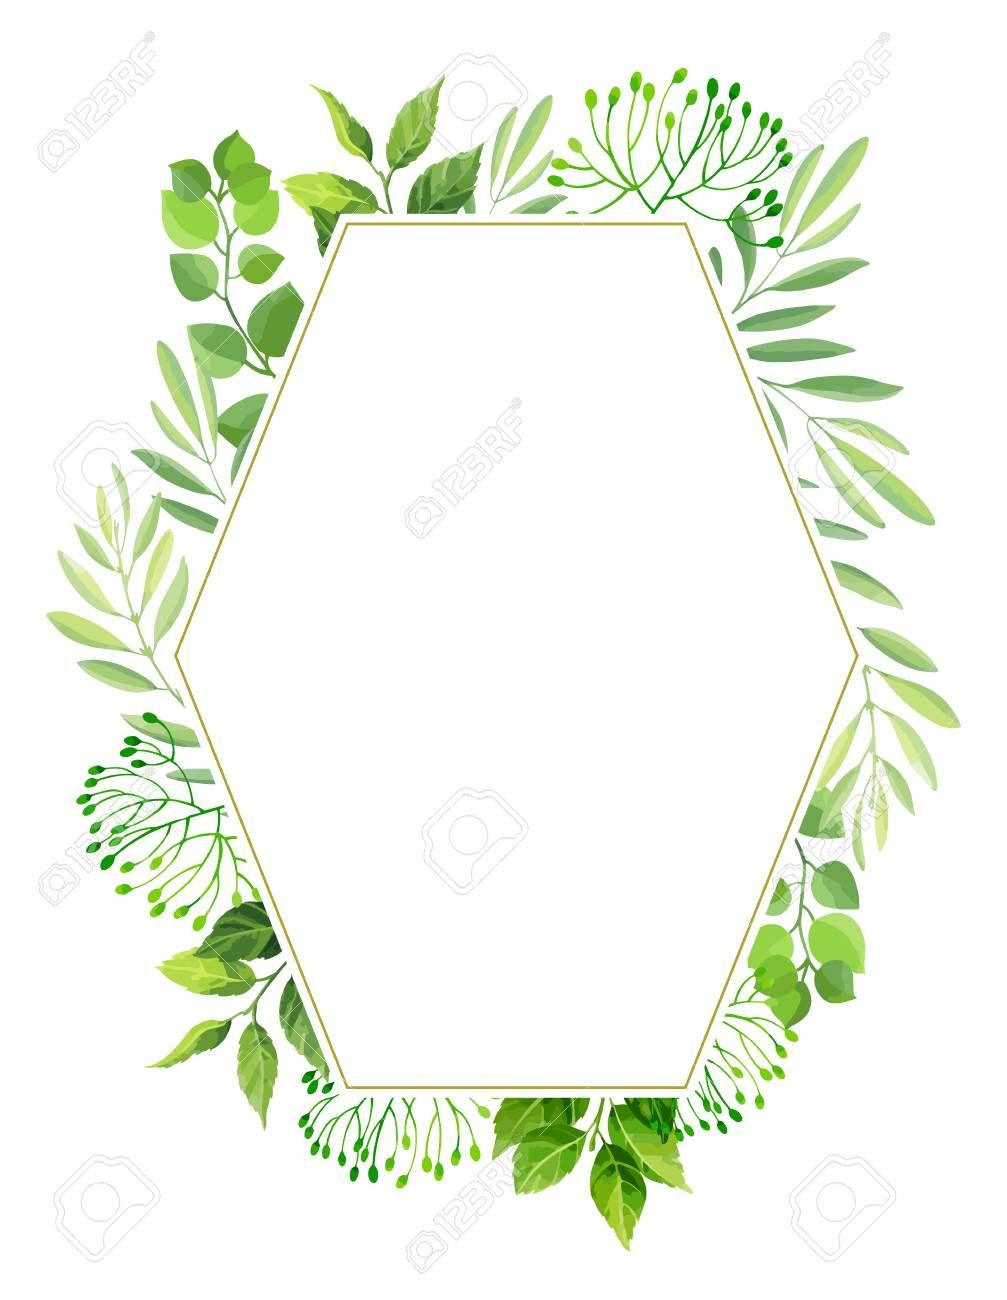 Green Leaves Frame Template Floral Background Vector Illustration Aff Frame Template Green Leave Floral Background Frame Template Abstract Design